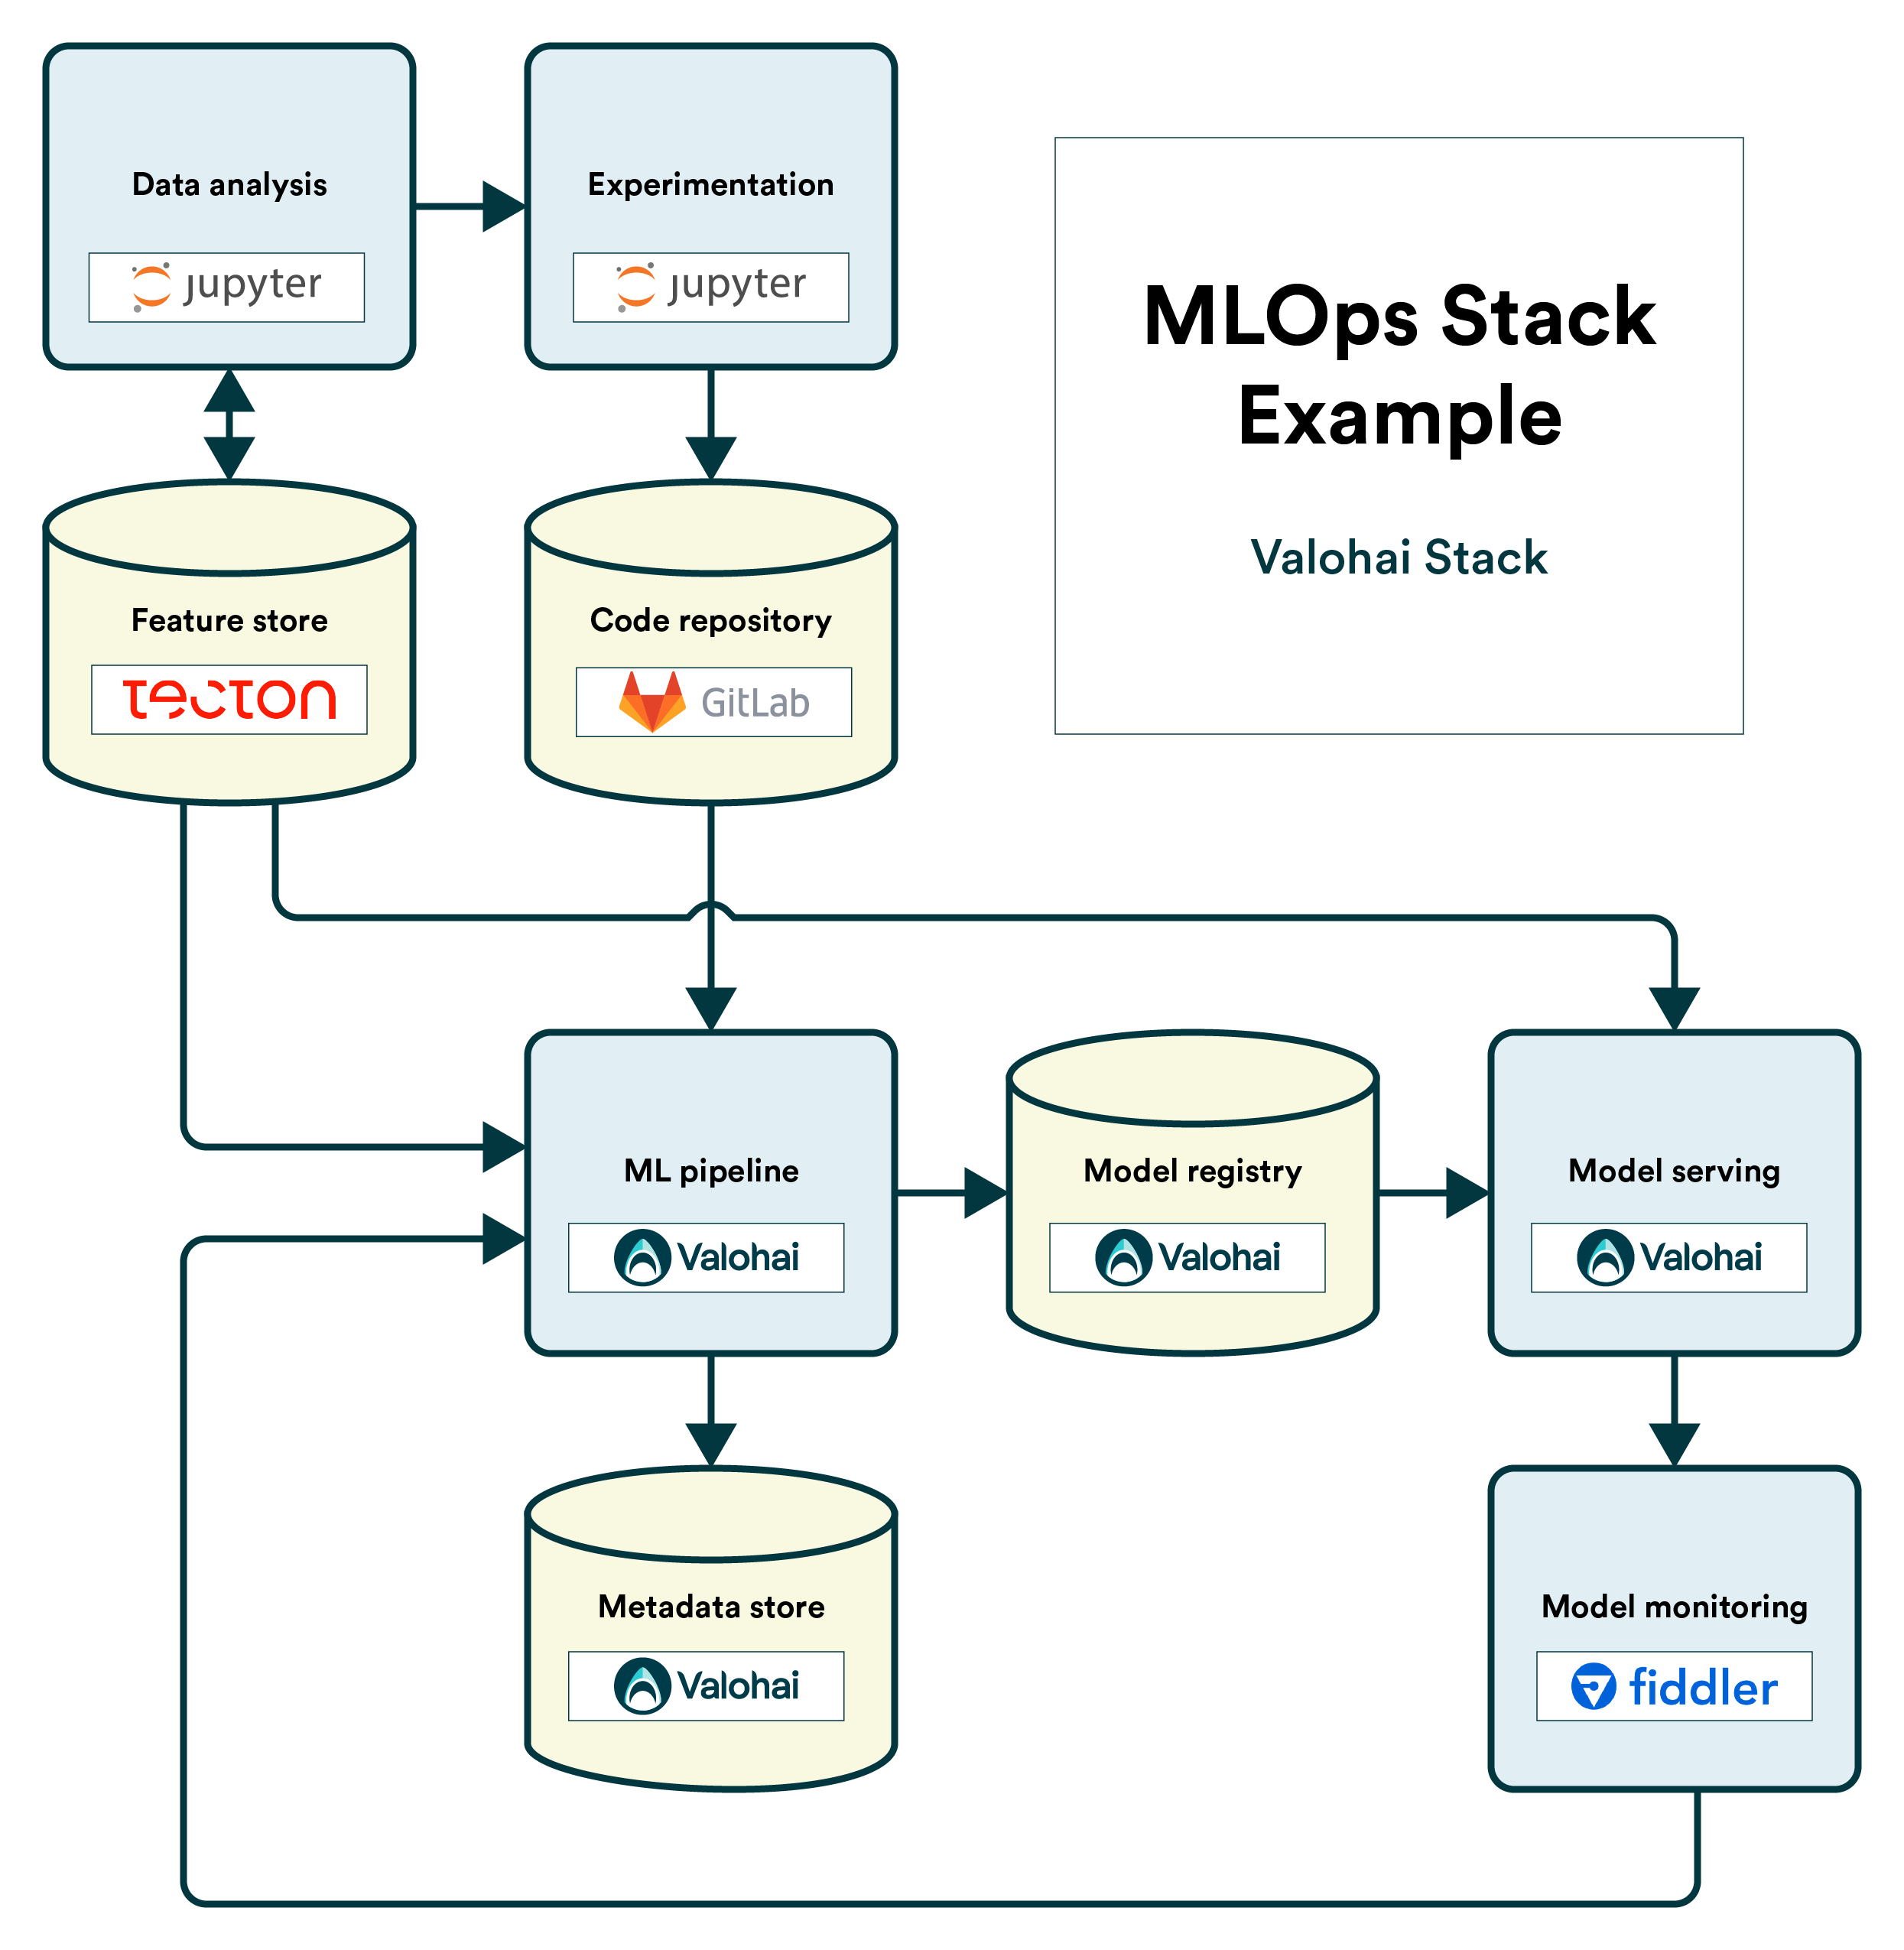 The MLOps Stack Template with Valohai